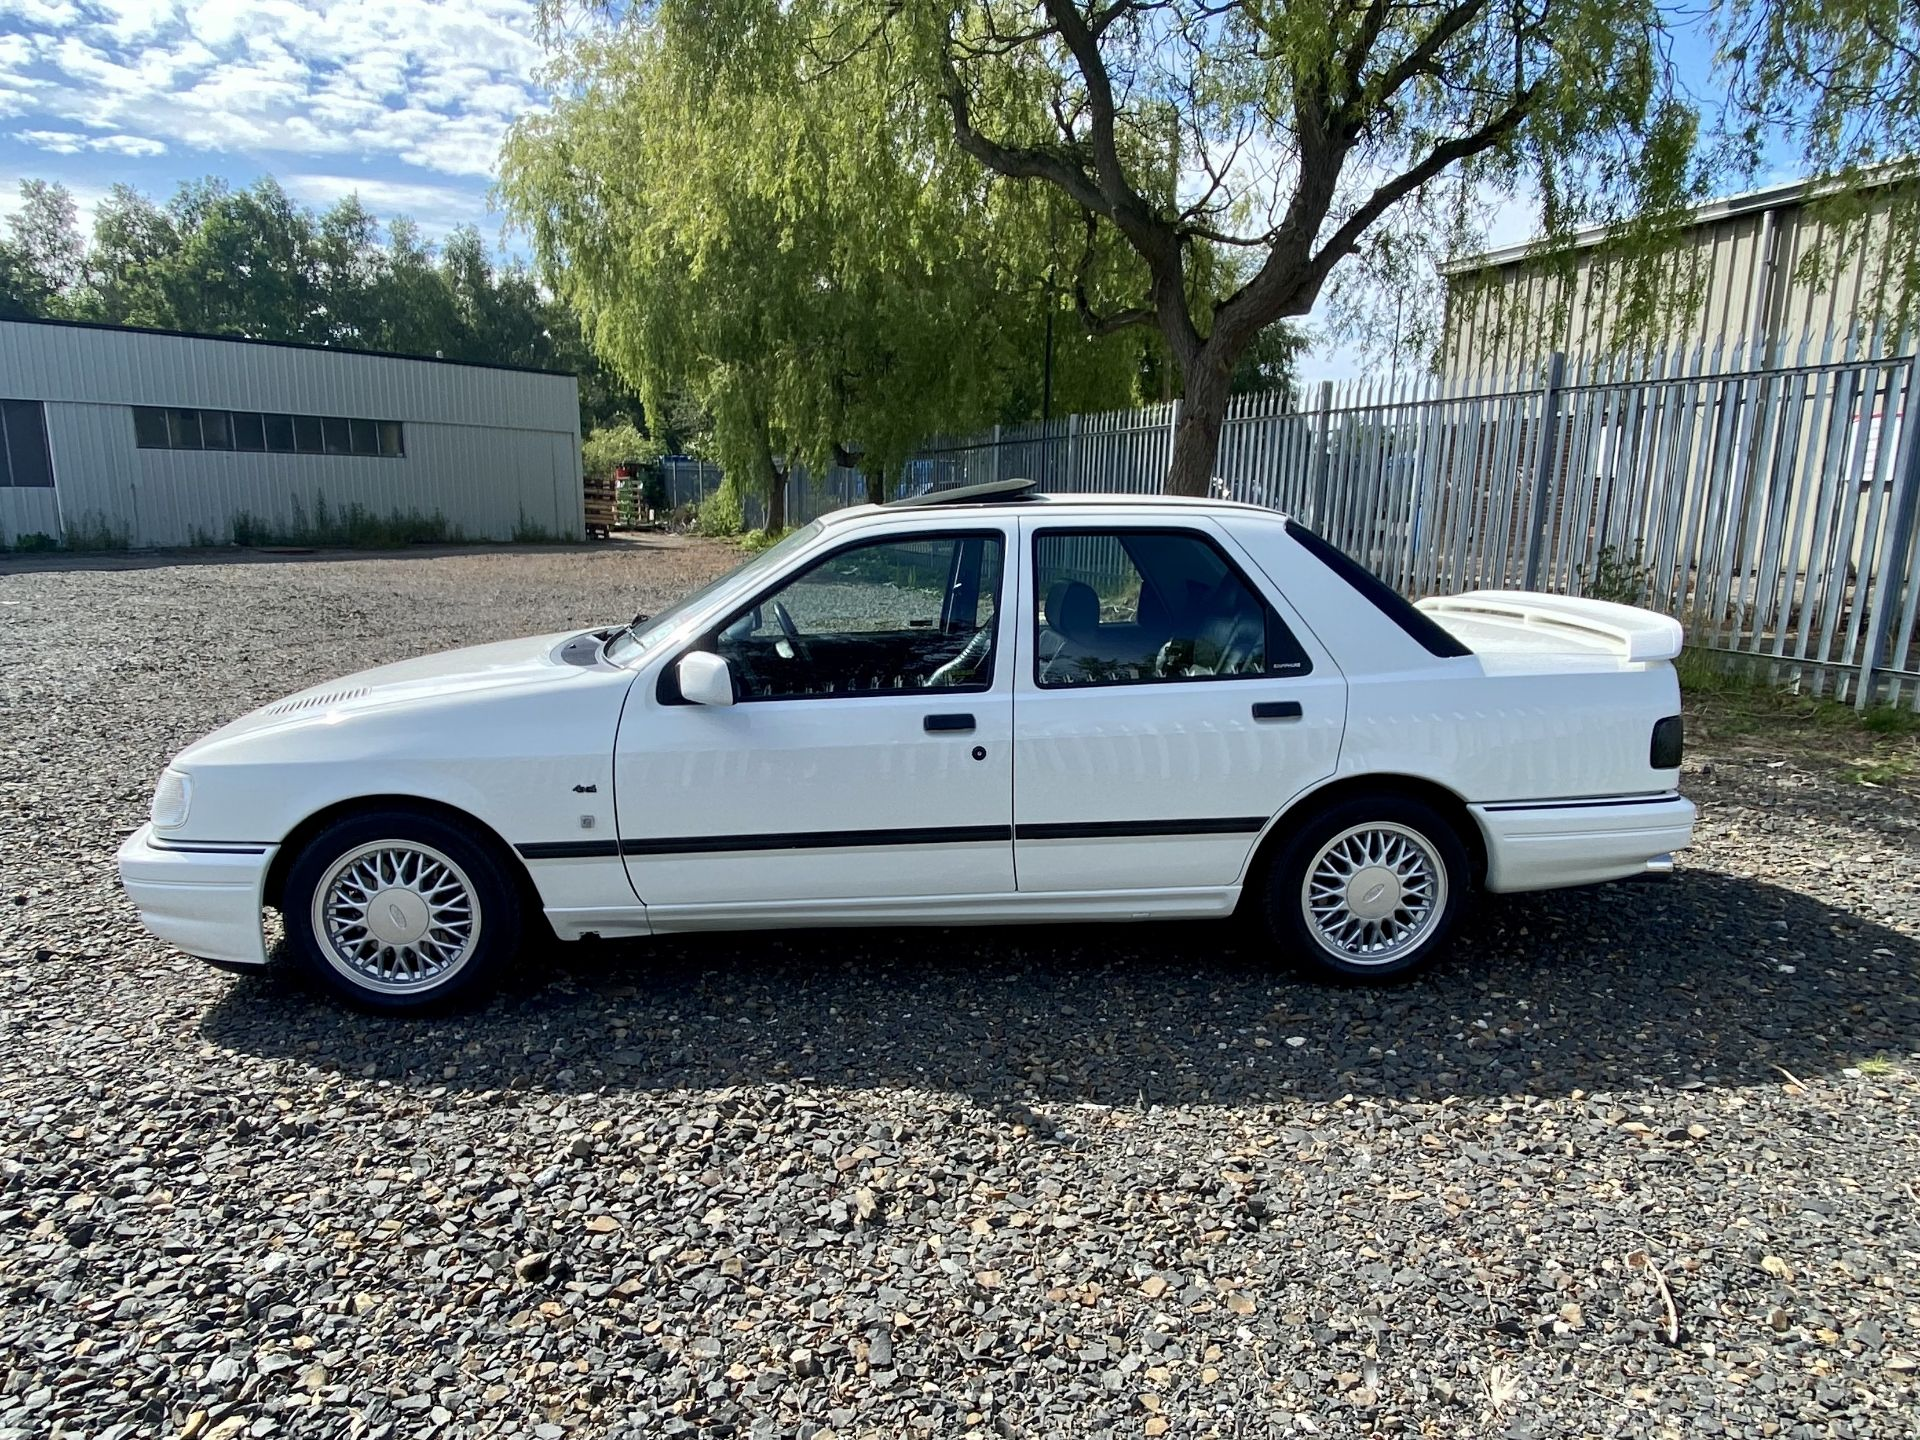 Ford Sierra Sapphire Cosworth 4x4 - Image 13 of 55